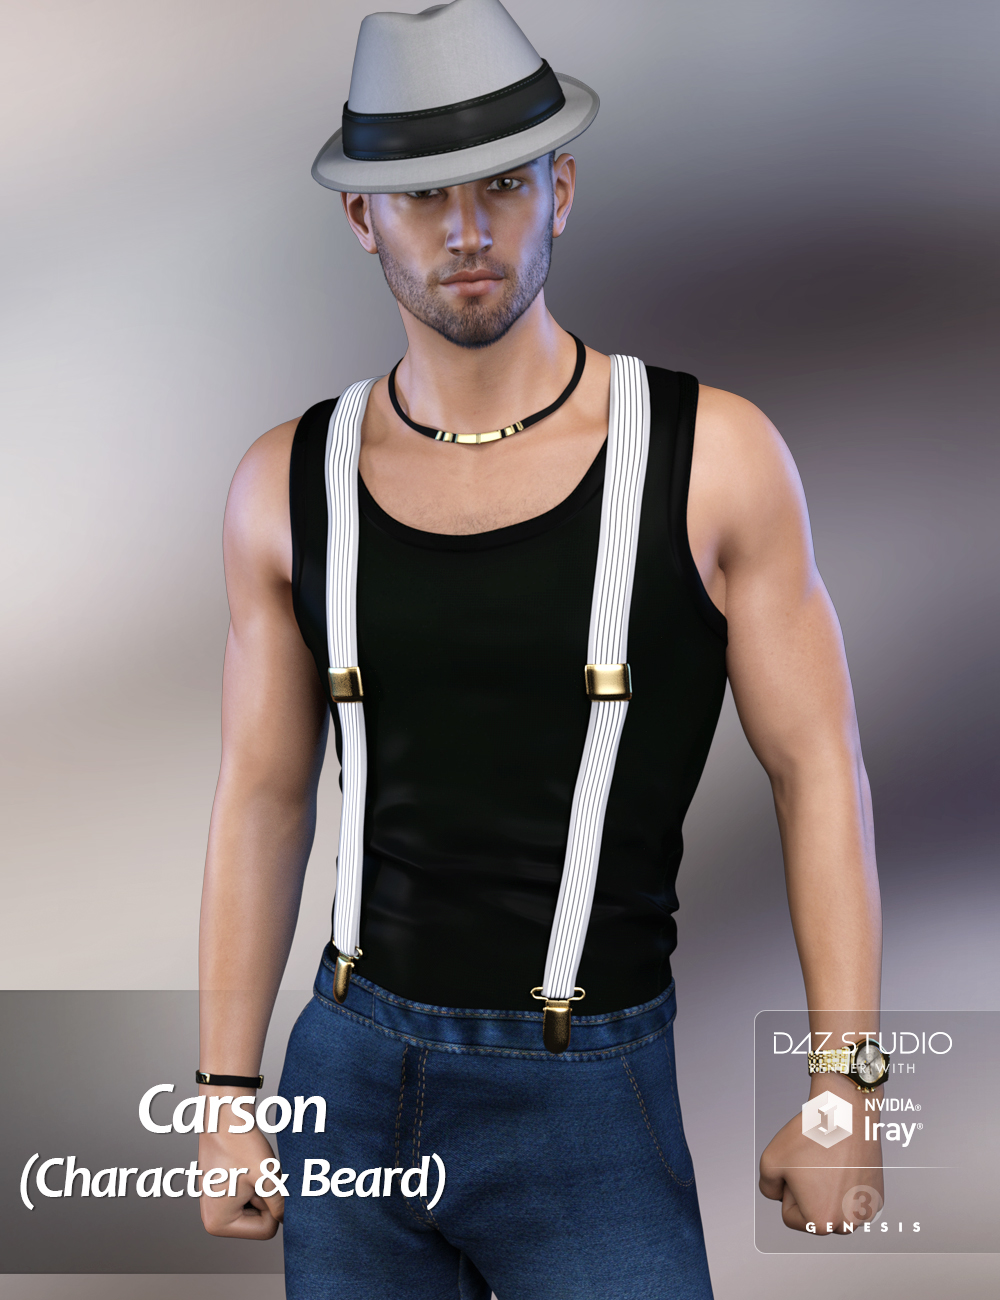 FWSA Carson HD for Michael 7 and LI Carson Whiskers by: Fred Winkler ArtSabbyLaticis Imagery, 3D Models by Daz 3D